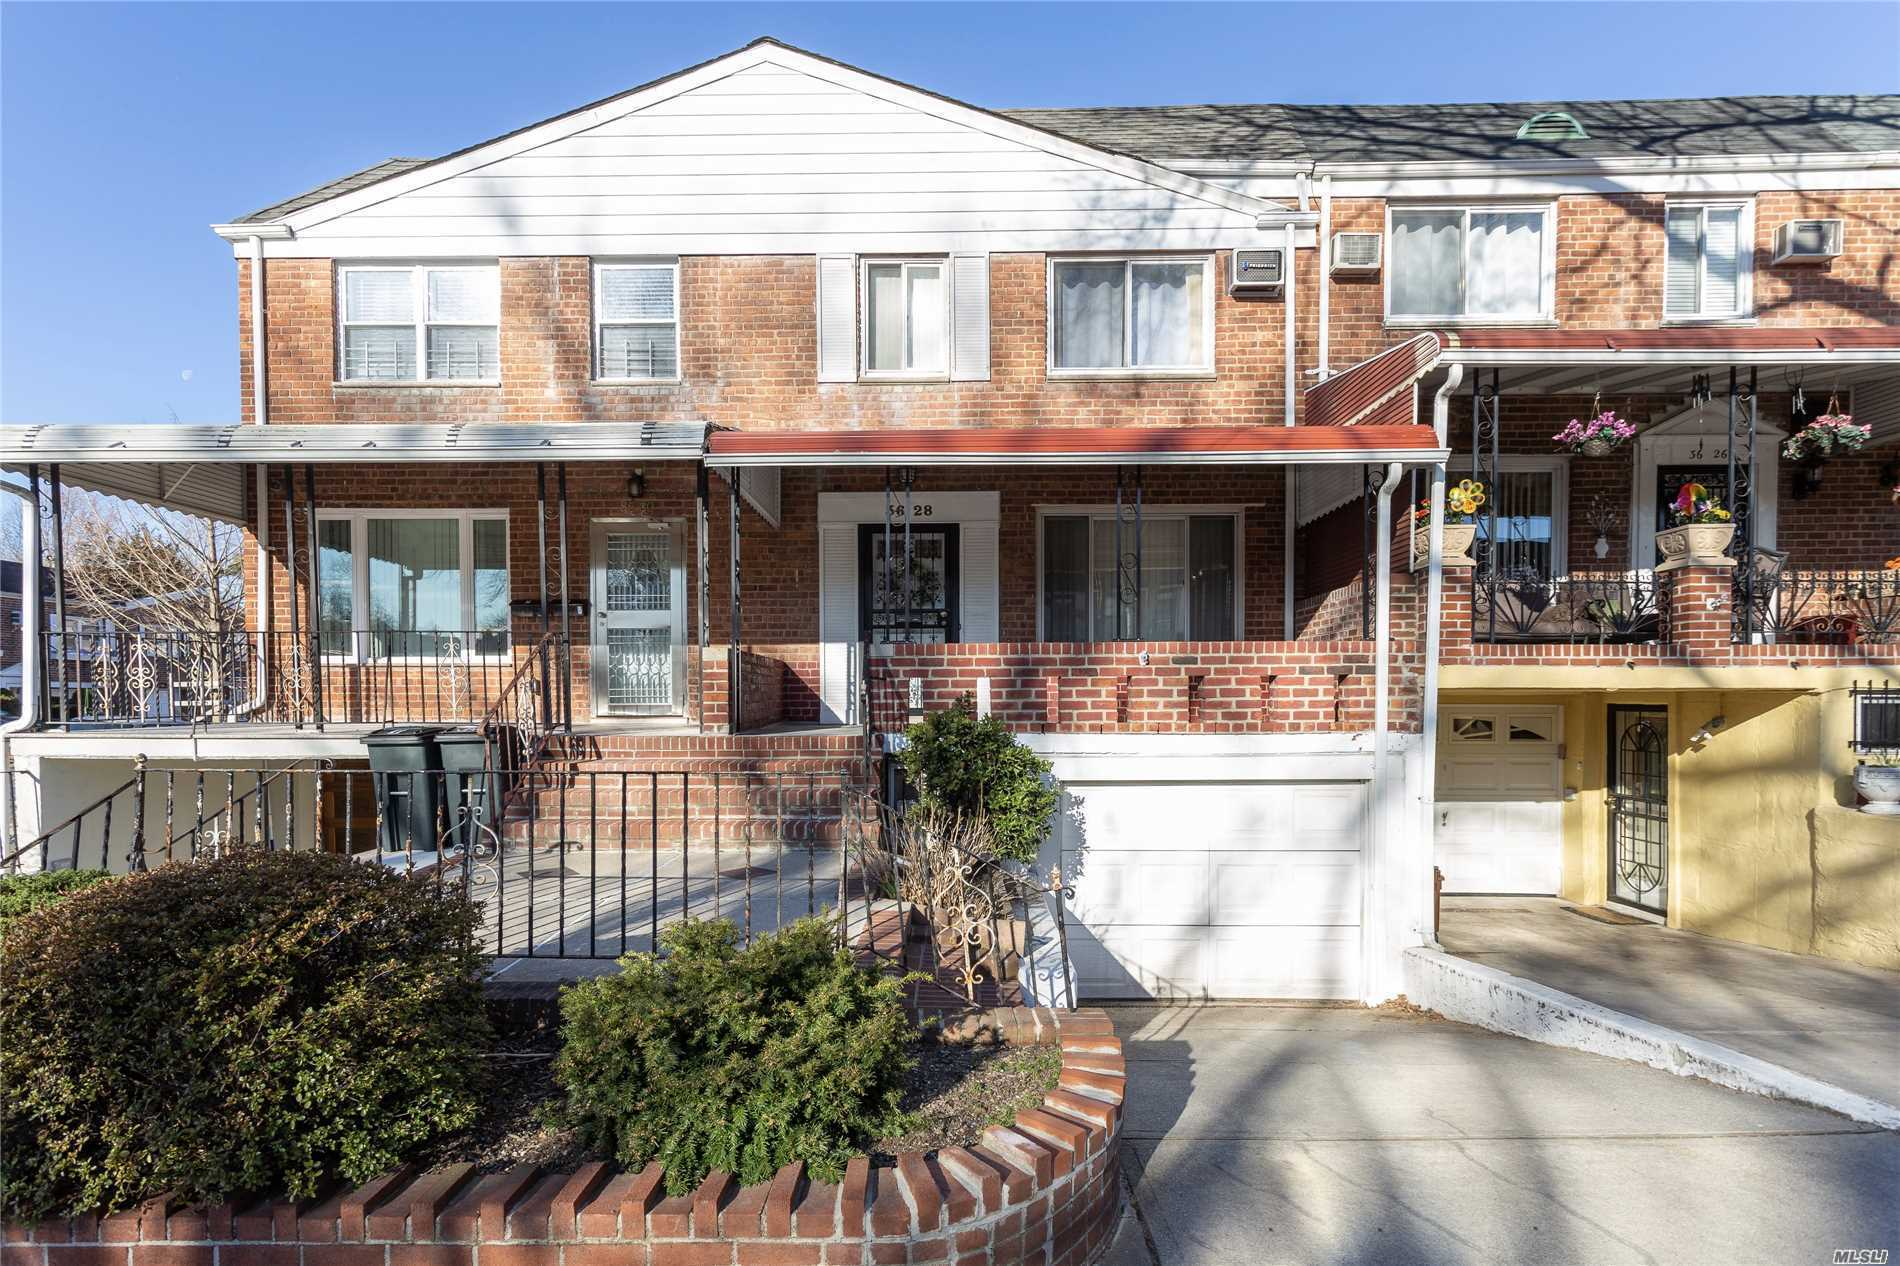 Completely Renovated Inside and out. Exquisite Detail And Workmanship. Sunny exposure. New Contemporary Kitchen And 2 new Bathrooms. Beautiful rear yard w new pavers and new Landscaping. Close To Train, buses and shopping. Don't miss this special gem!! R5 Zoning